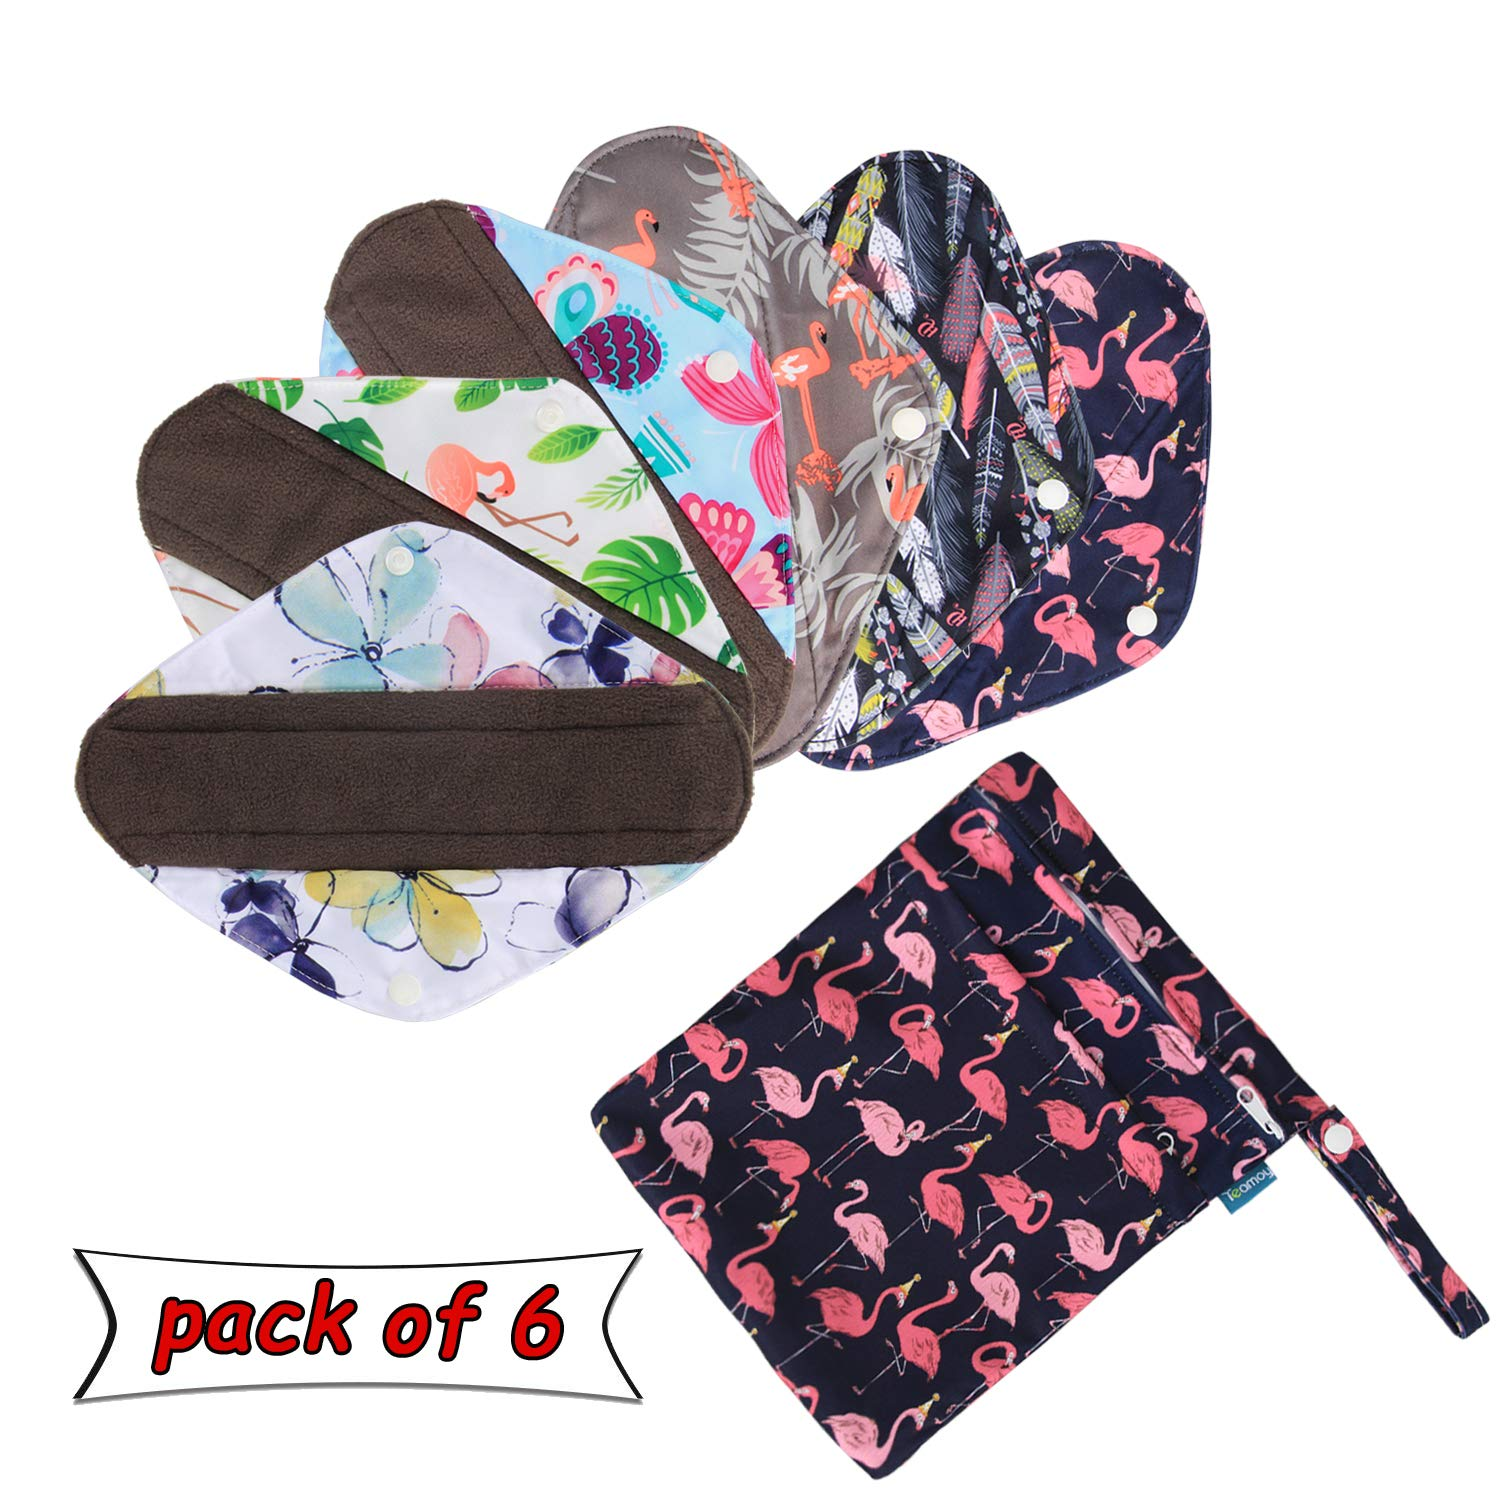 6Pcs Reusable Sanitary Pads with Extra Wet Bag, Washable Cloth Menstrual Pads/Panty Liners, Perfect for Heavy Flow by Teamoy(Extra Large-35.5cm/14 inches)